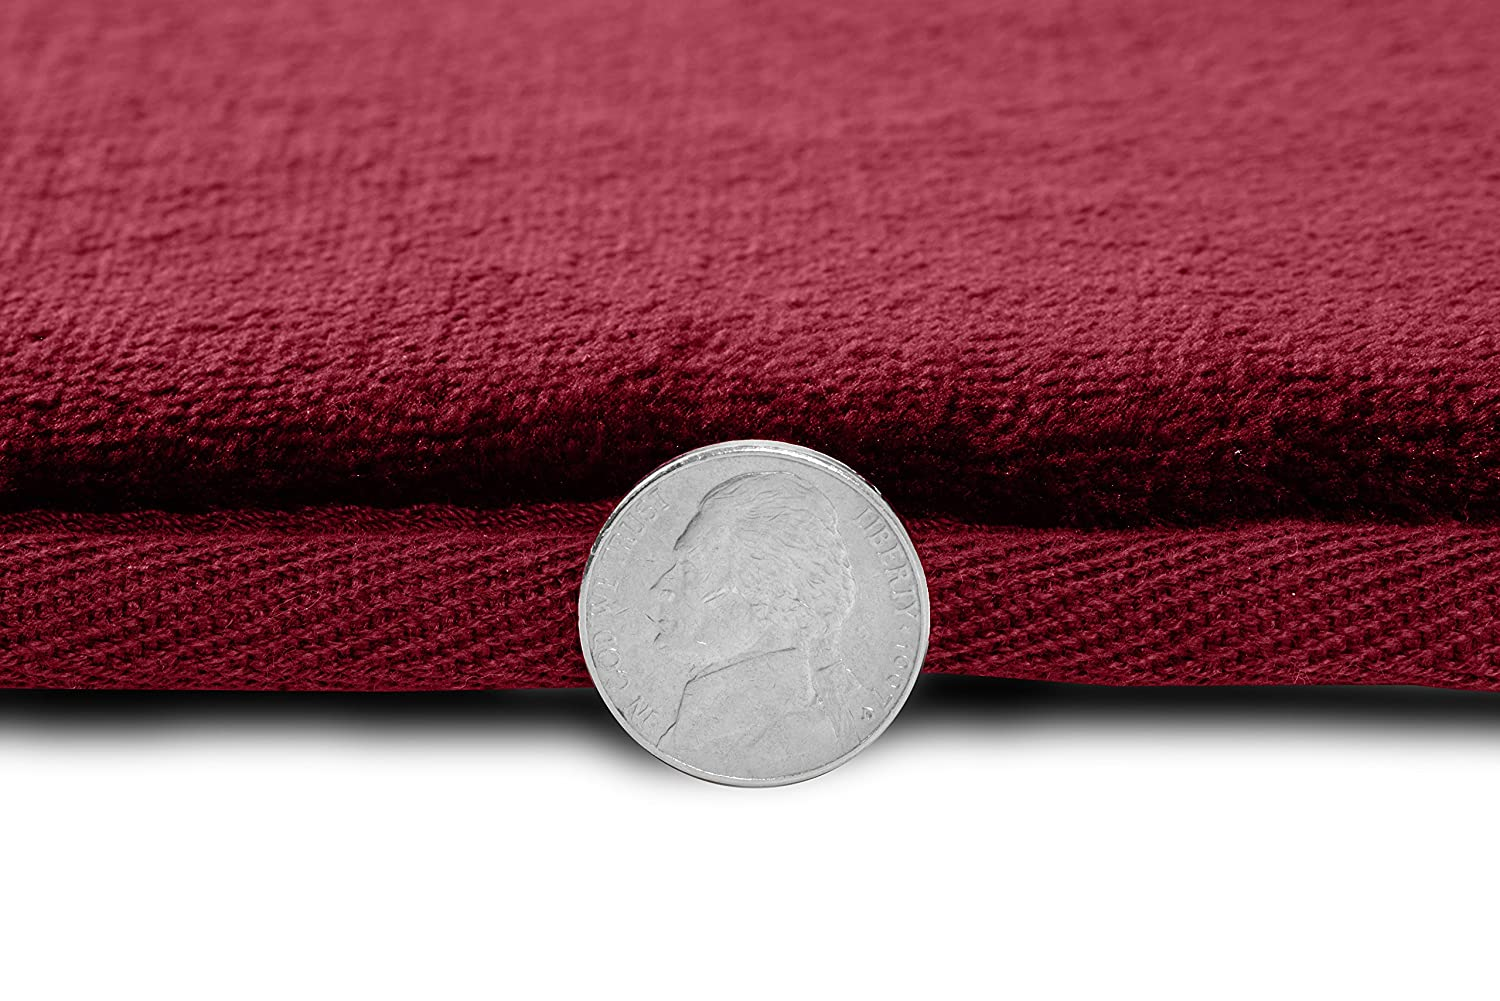 Clara Clark Non Slip Memory Foam Tub-Shower Bath Rug Set 1 Large Size 20 X 32 in Includes 1 Small Size 17 x 24 in - Coral Pink